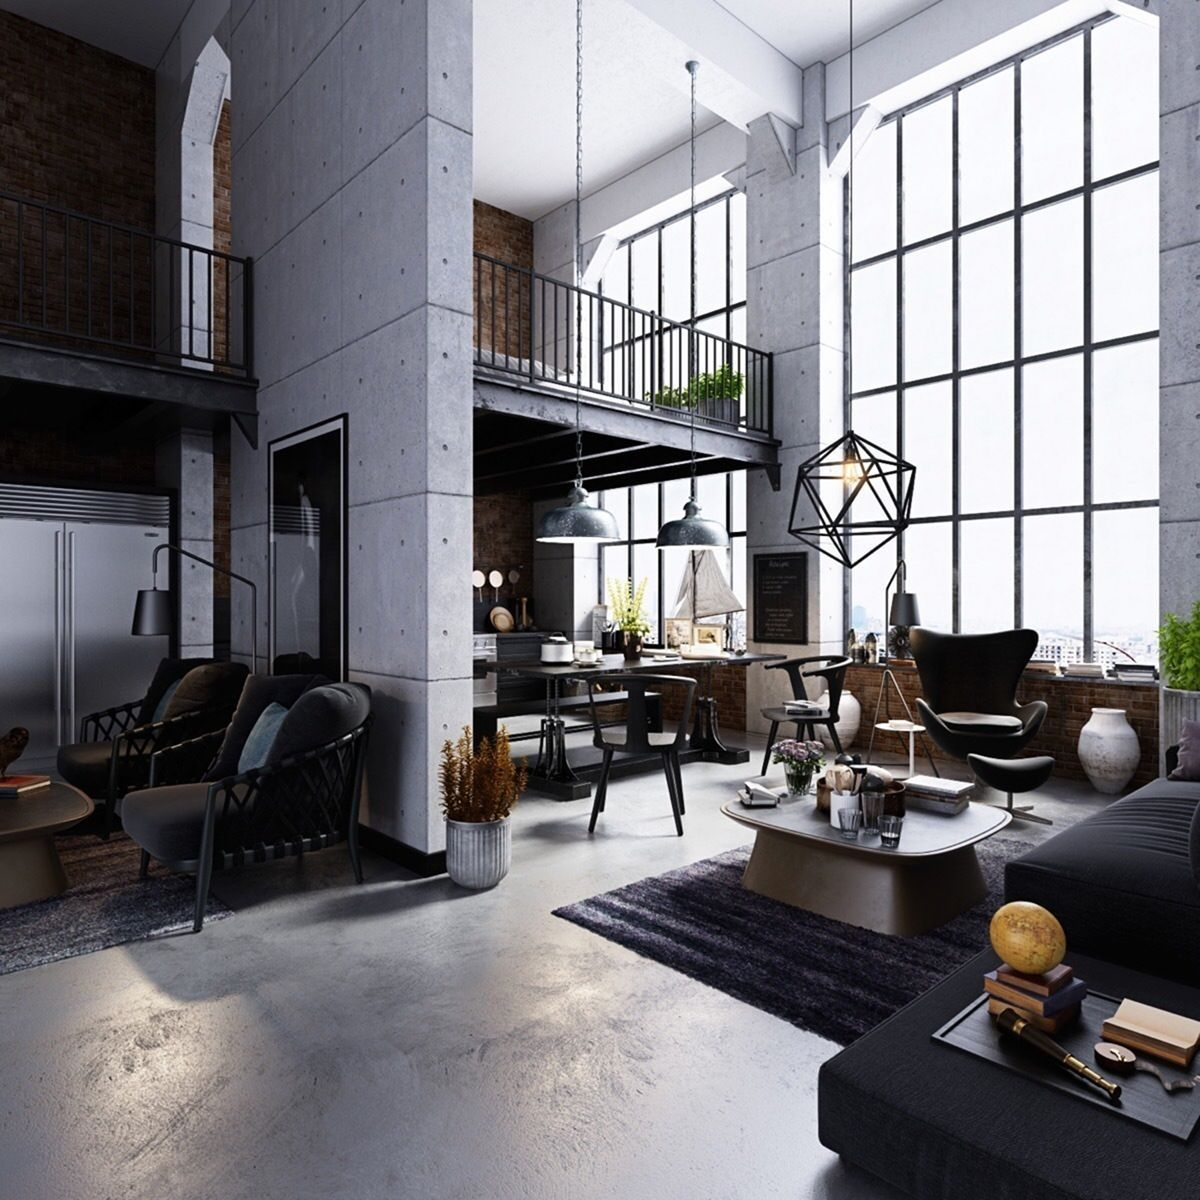 10 Beautiful Industrial Living Room Ideas For Cozy Home Industrial Style Living Room Loft Design Loft Interiors